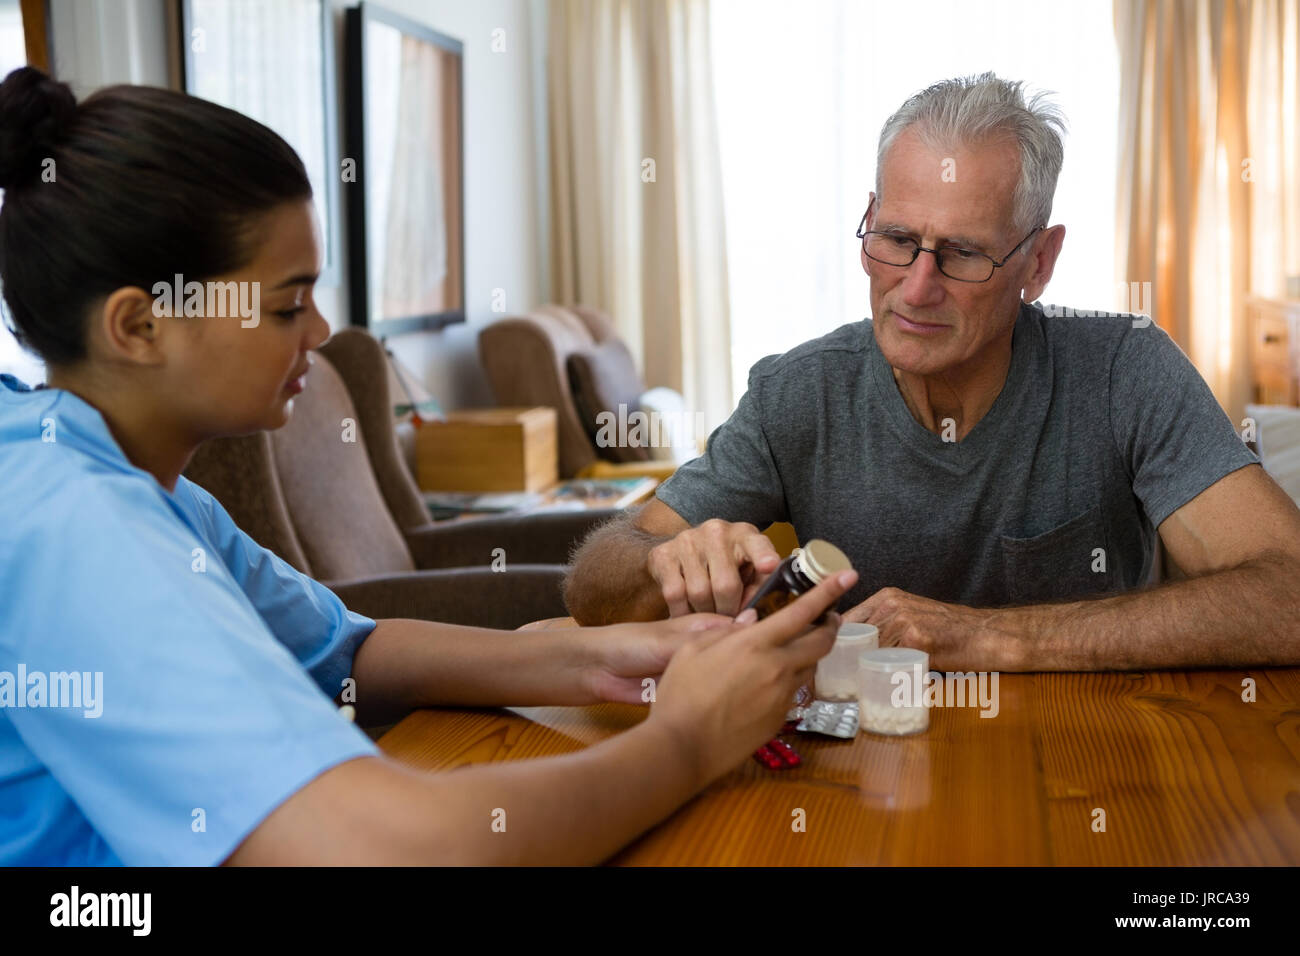 Female doctor guiding senior man in taking medicine at table - Stock Image